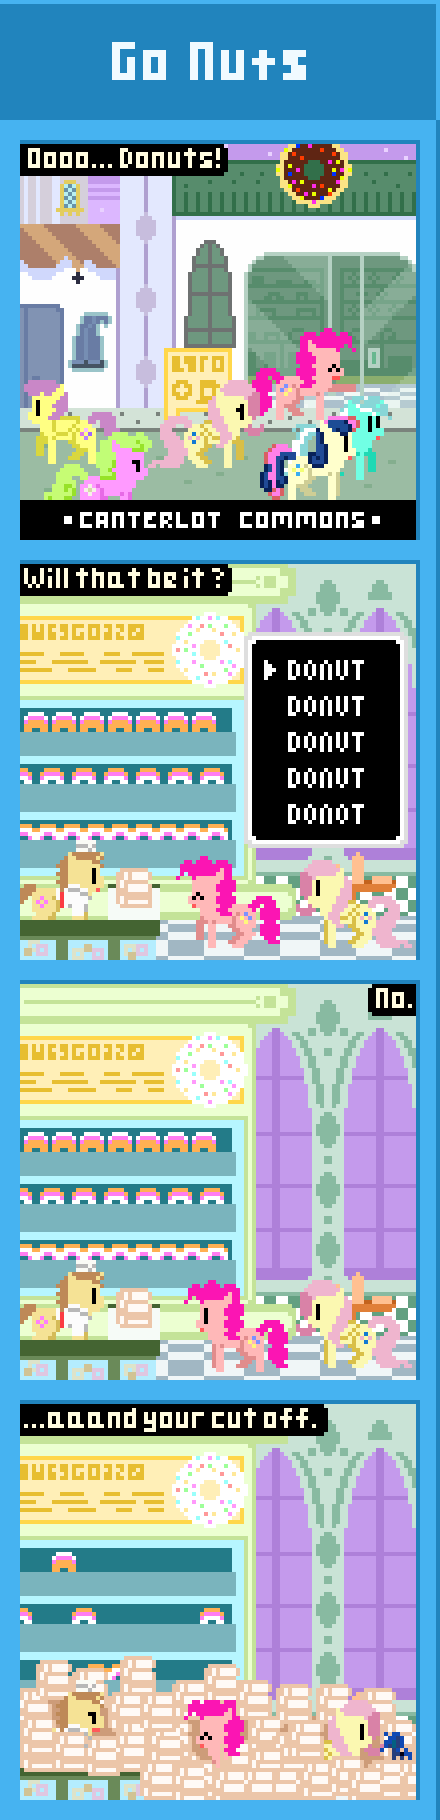 Go Nuts. via: submitnew=10%253A1406516176&gatype=edit&gachanges=1&ga_recent=1 Wonder how many Bits that would cost! MLP: FiM, Pinkie Pie, Fluttershy